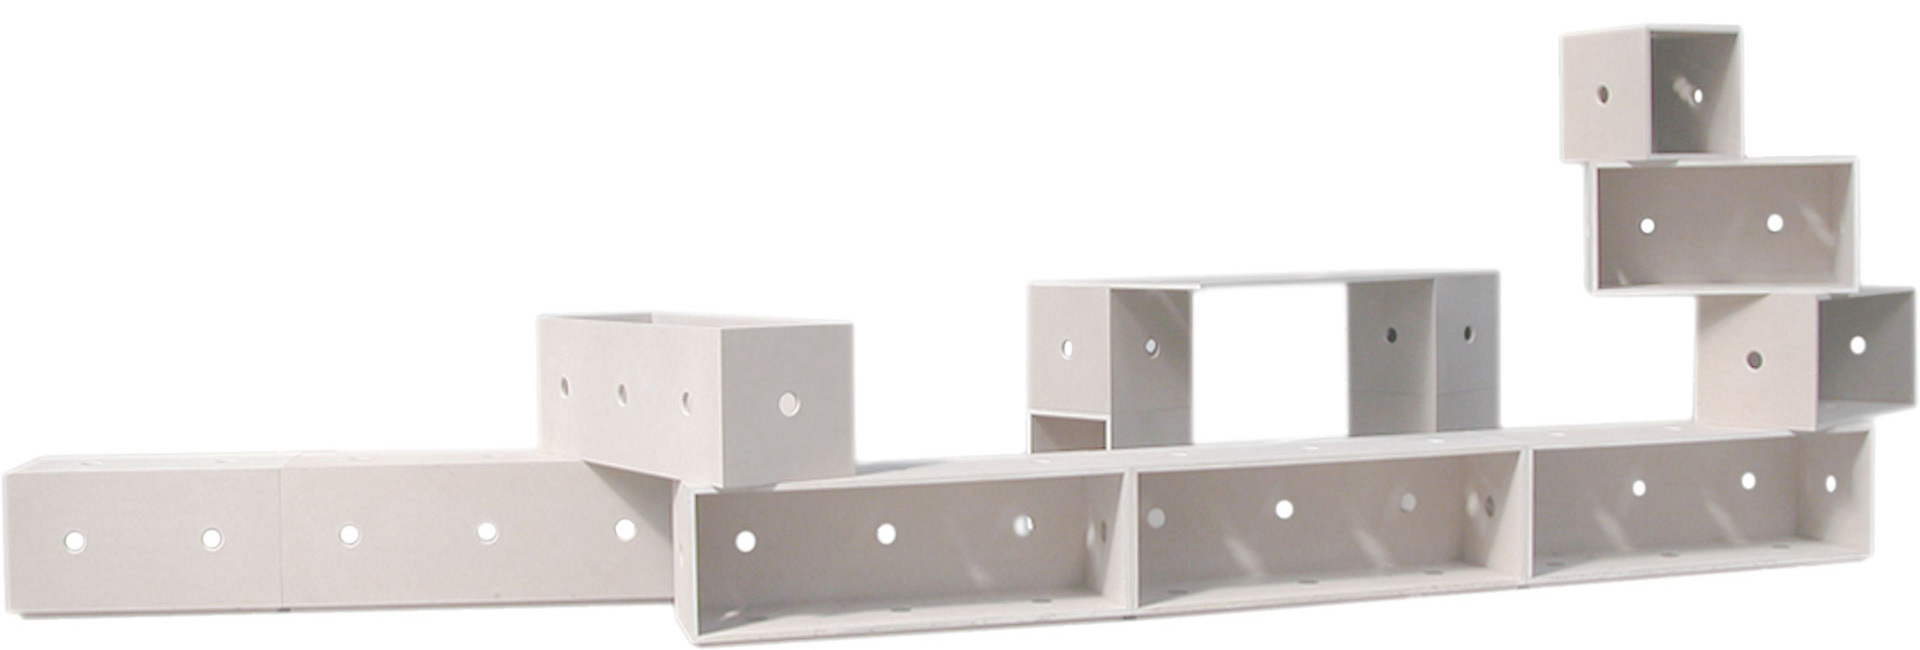 clipbox-flexible-room-furniture-system